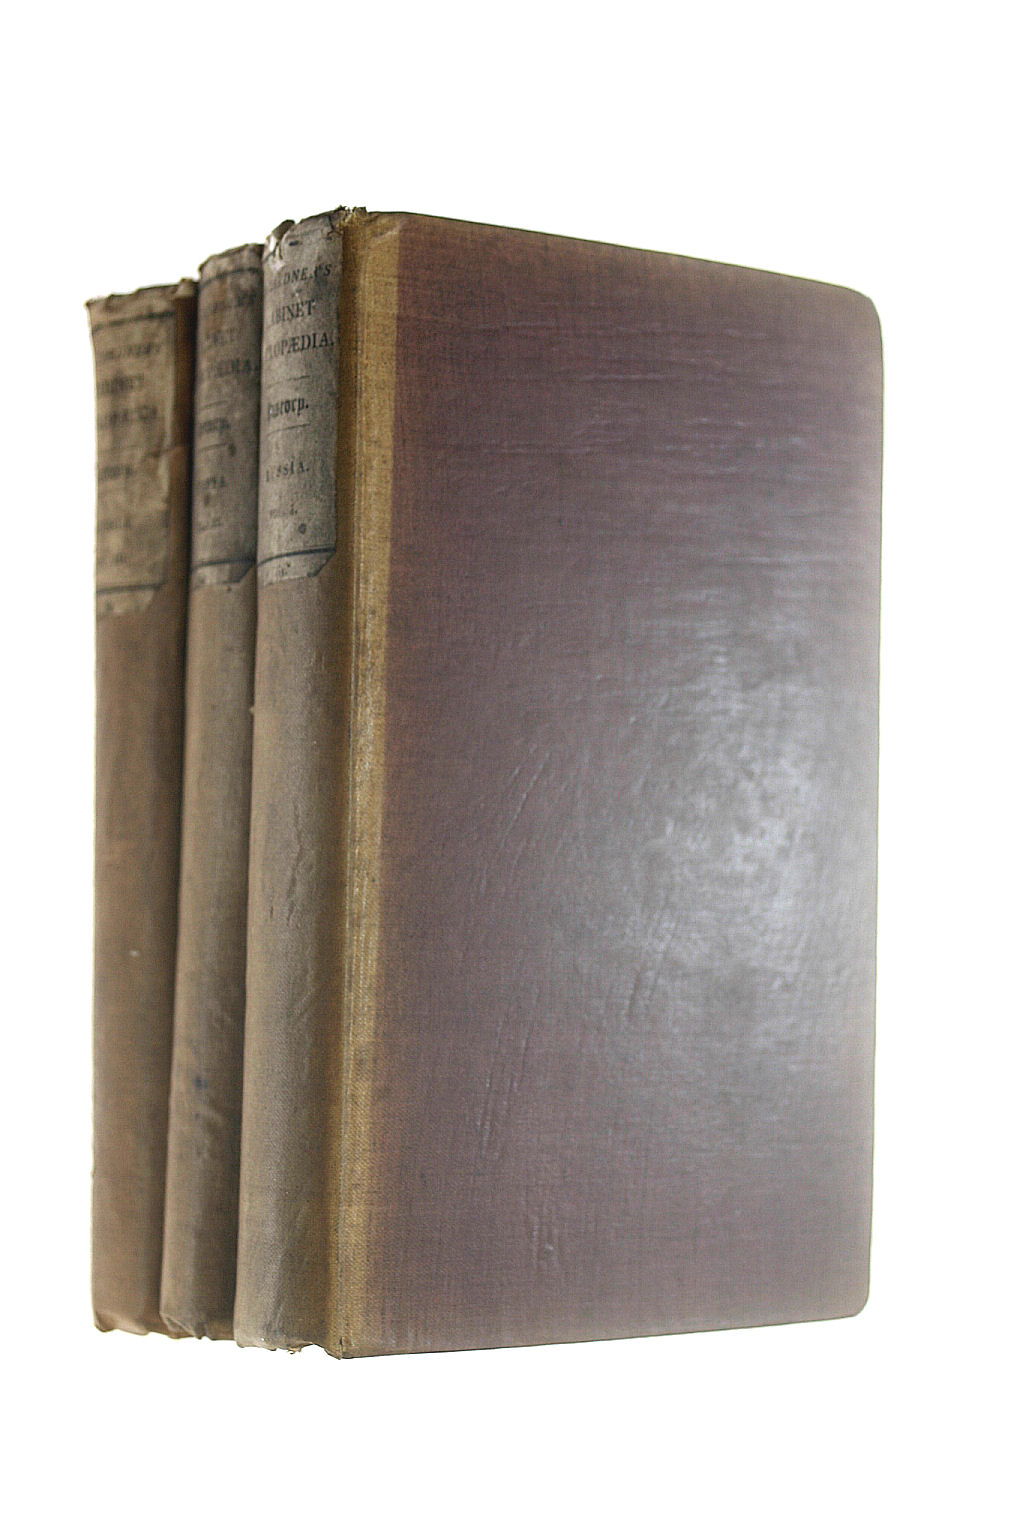 Image for DR. LARDNER'S CABINET CYCLOPAEDIA. HISTORY: RUSSIA 3 VOLUMES